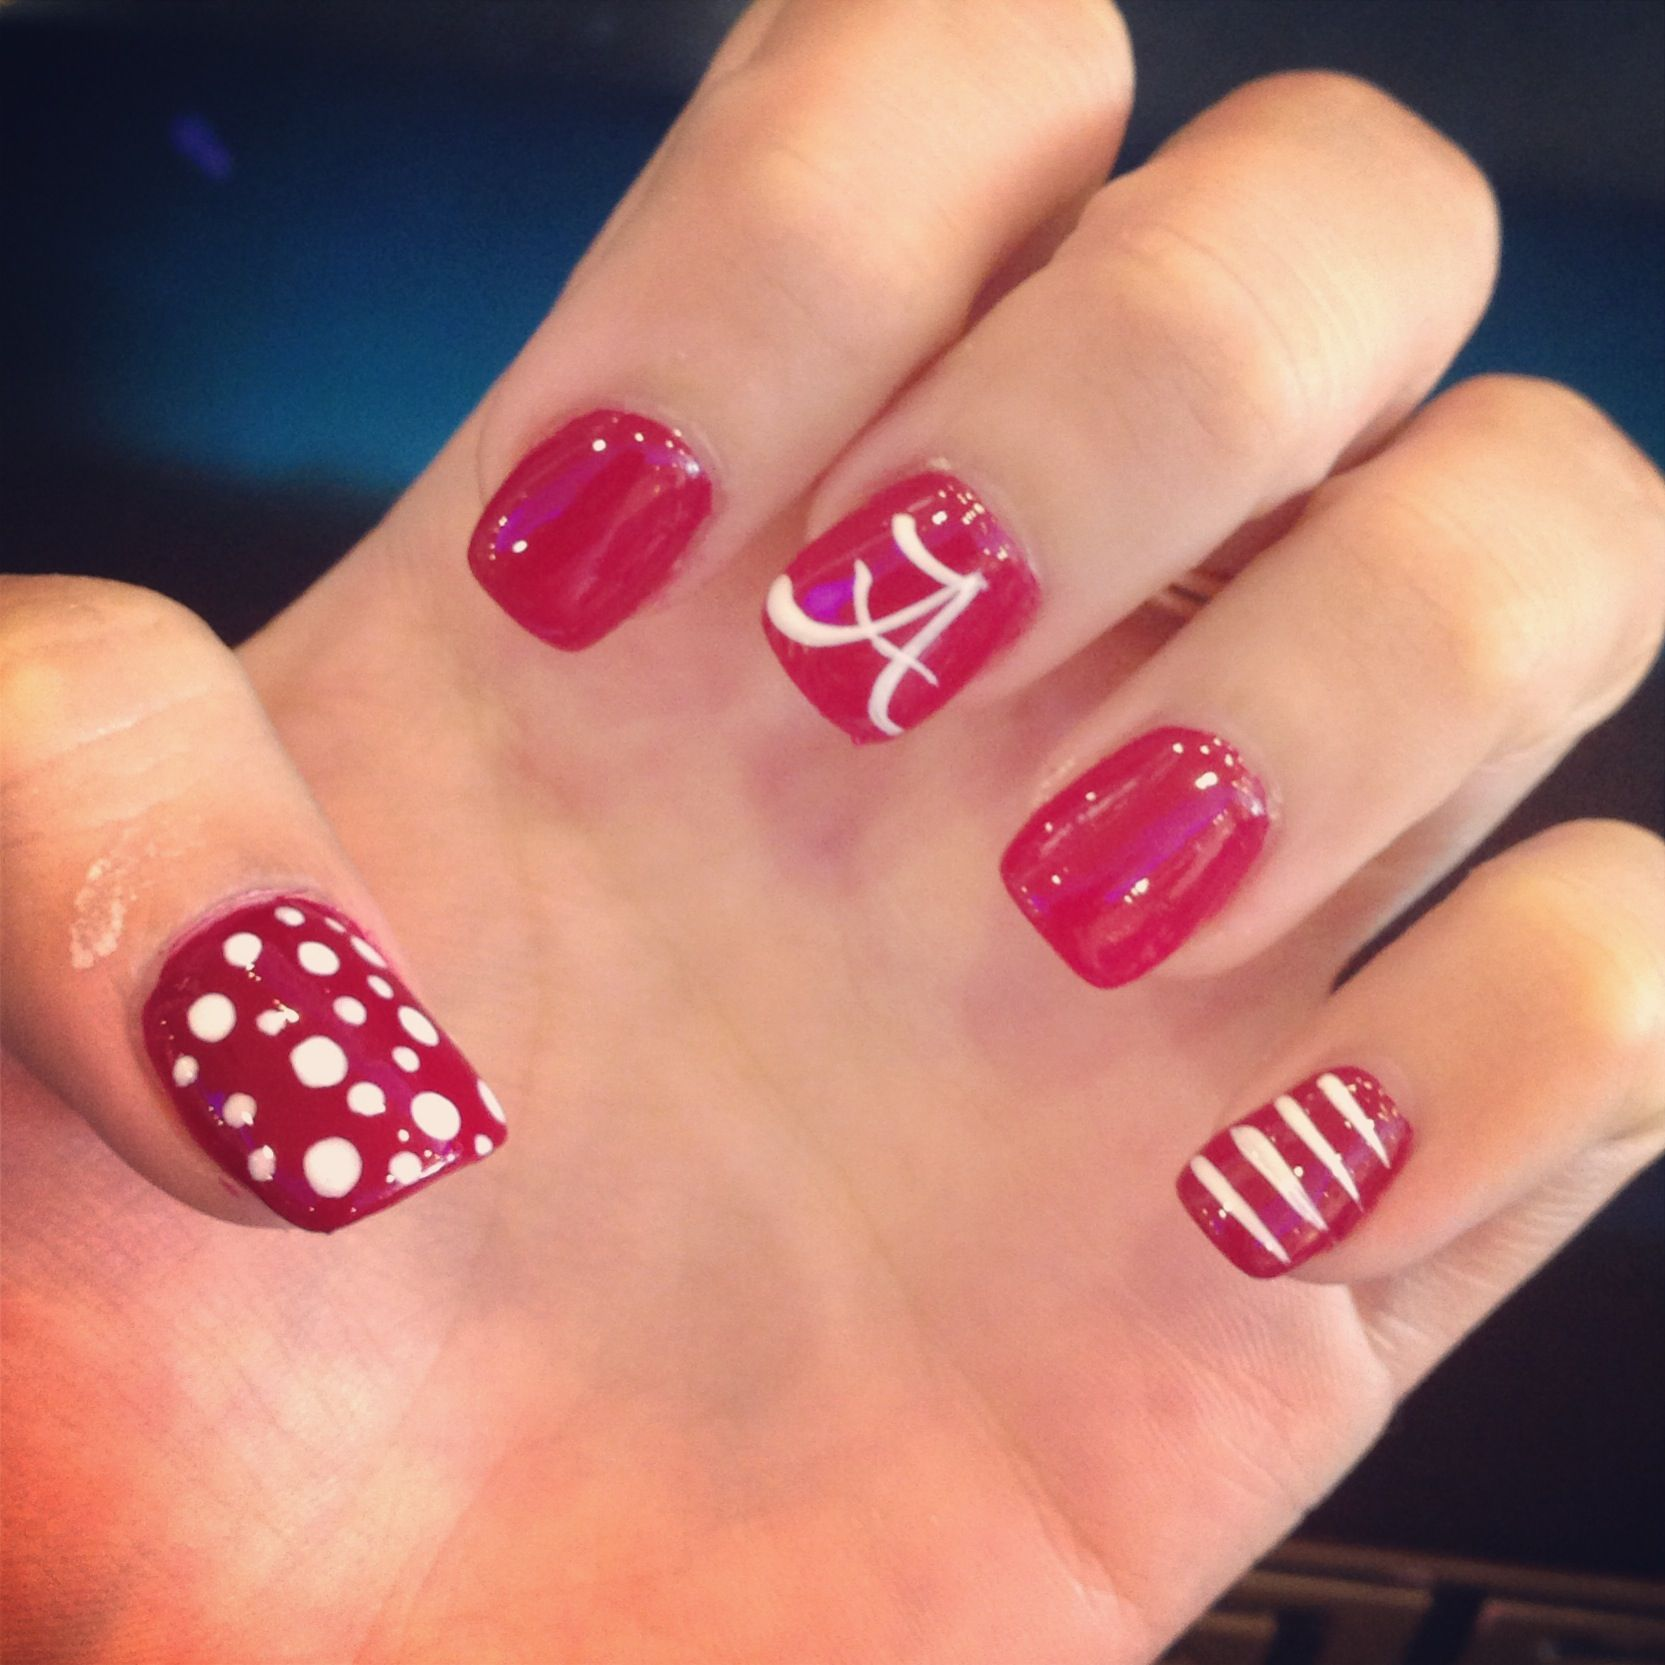 Alabama nails!!! LOVEEE | Nails | Pinterest | Alabama nails, Alabama ...